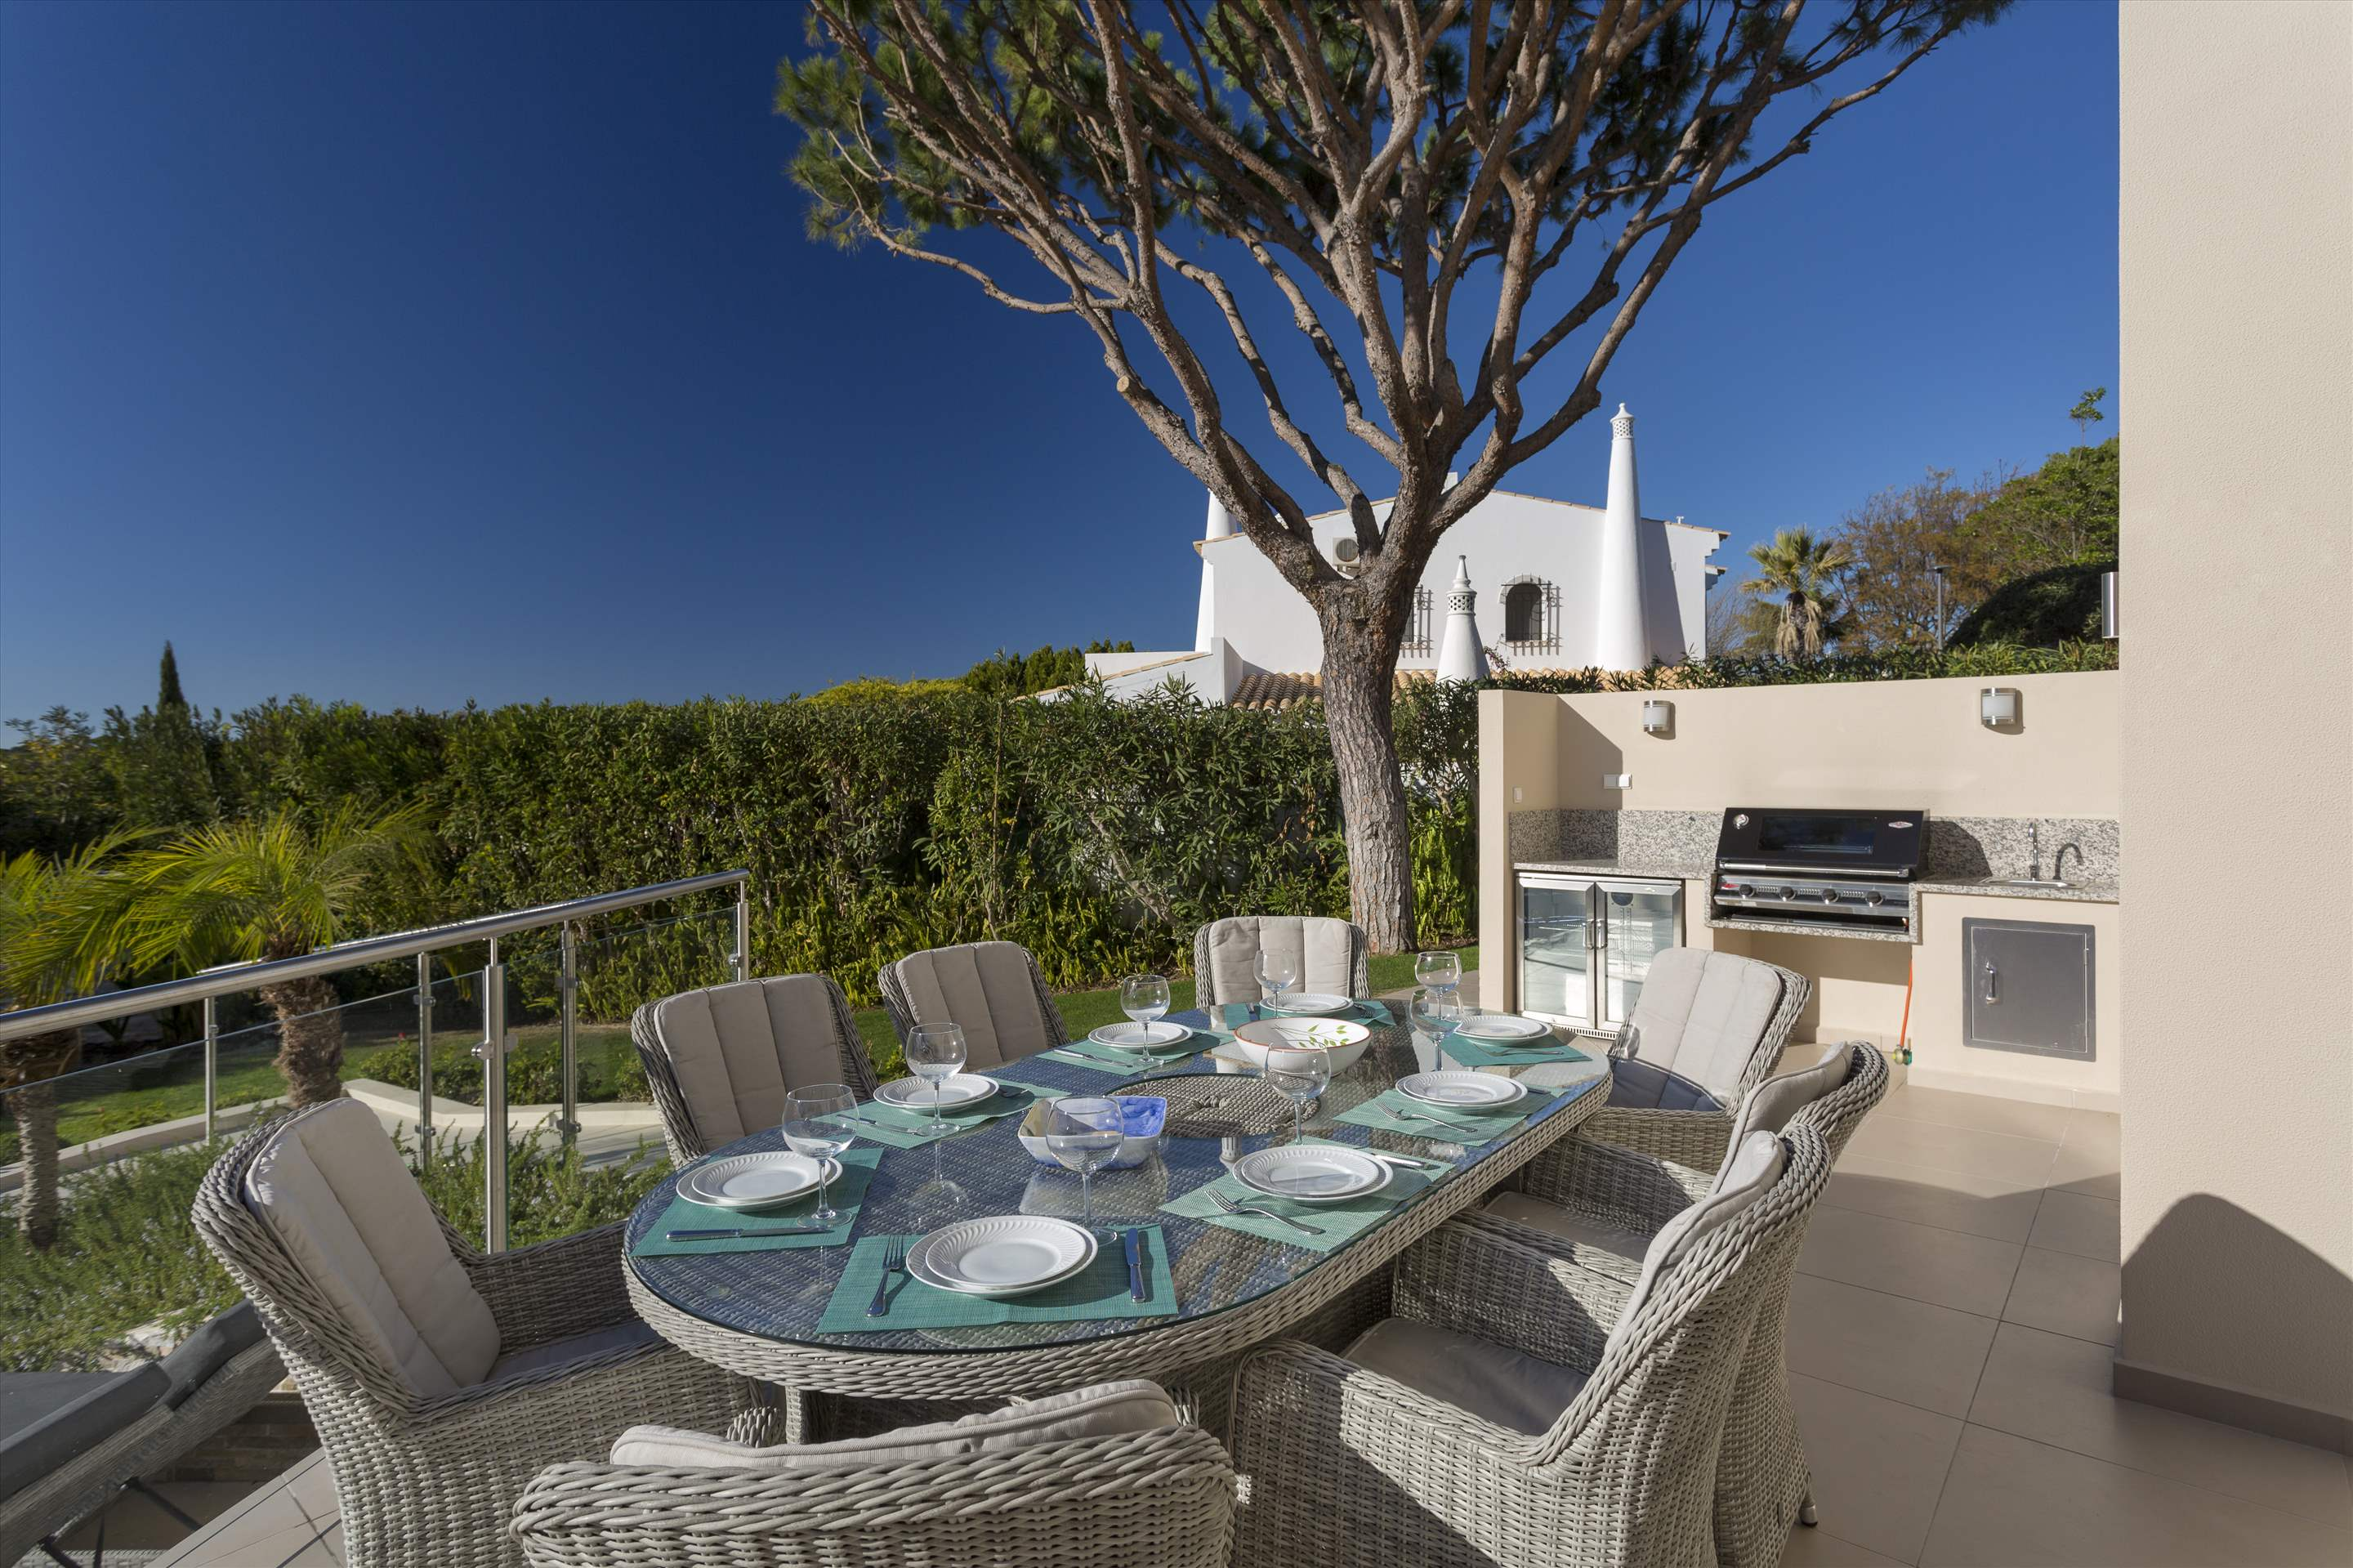 Villa La Soudada, 4 bedroom villa in Dunas Douradas, Algarve Photo #2